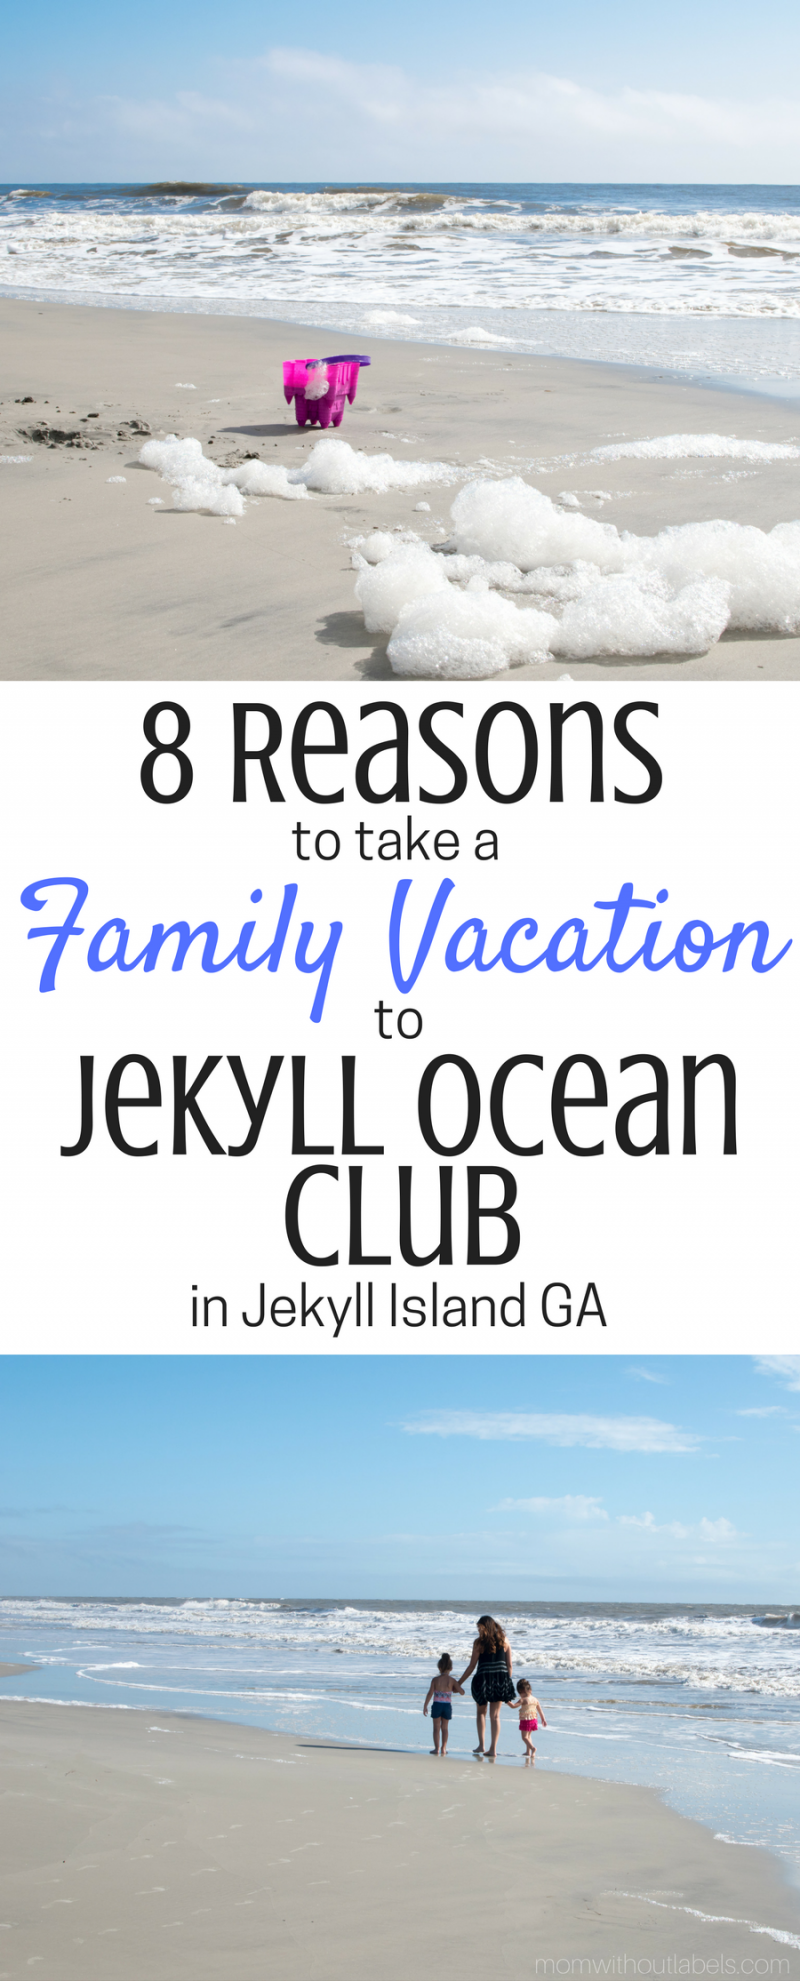 #FamilyTrips #FamilyVacation #JekyllIsland #GeorgiaVacation #GeorgiaBeach #GeorgiaBeaches #VisitGeorgia #JekyllOceanClub #JekyllIslandClubResort | Jekyll Island Georgia | Family Vacation Ideas | Traveling with Kids | Vacation Destinations for Families | Kids Vacation | Vacation Ideas | Travel | Travel Tips | Kid Vacation Spots | Kid Vacations in US | Kid Vacations USA | Kids Vacation Ideas | Family Friendly Resorts | Family Friendly Travel | Family Friendly Resorts | Georgia Vacation | Georgia Family Vacations